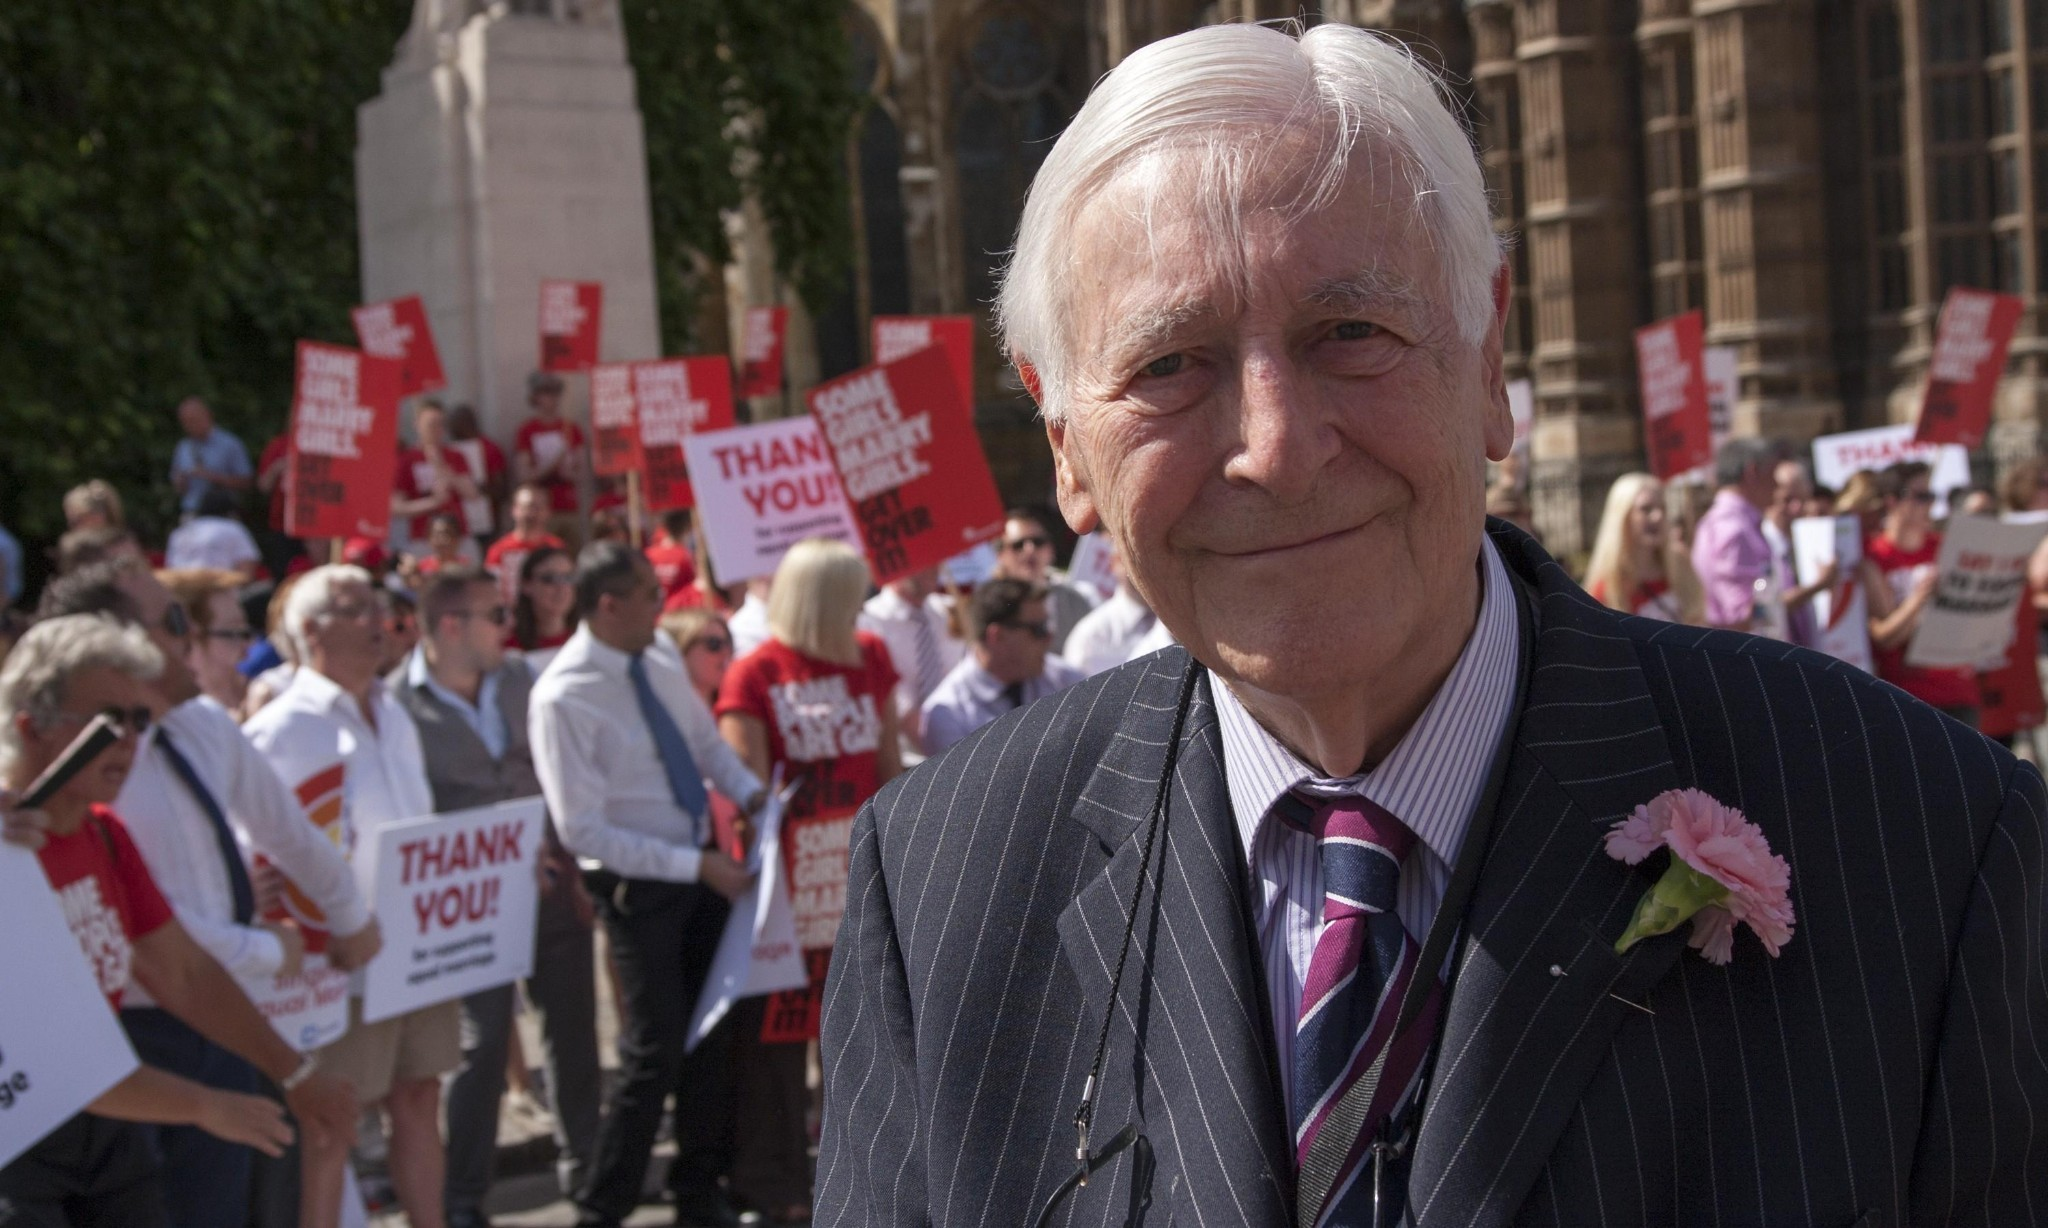 This ludicrous election to replace Lord Avebury should be boycotted